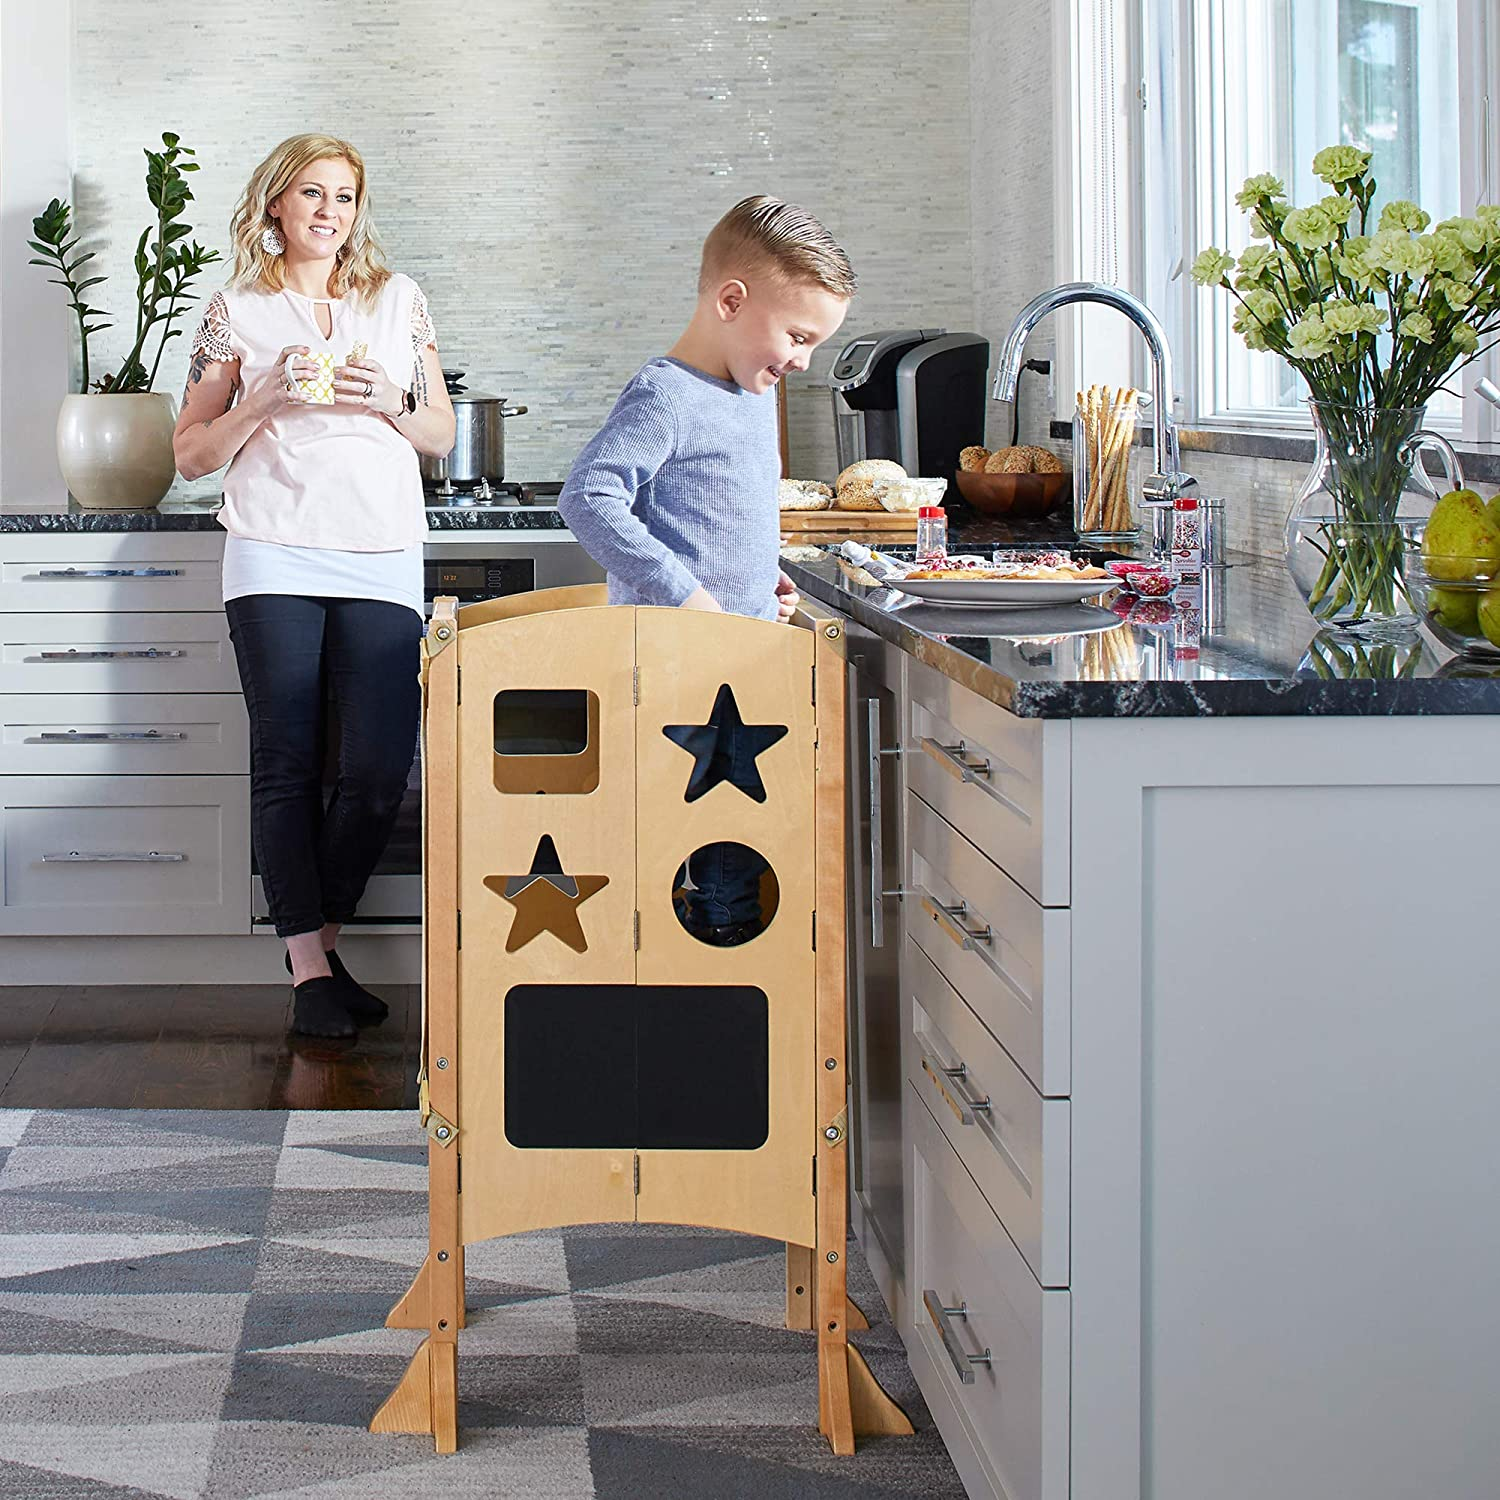 Amazon Com Guidecraft Classic Kitchen Helper Stool And 2 Keepers Natural Adjustable Height Kitchen Step Stool For Toddlers W Chalkboard And Whiteboard Message Boards Supports Up To 125lbs Furniture Decor